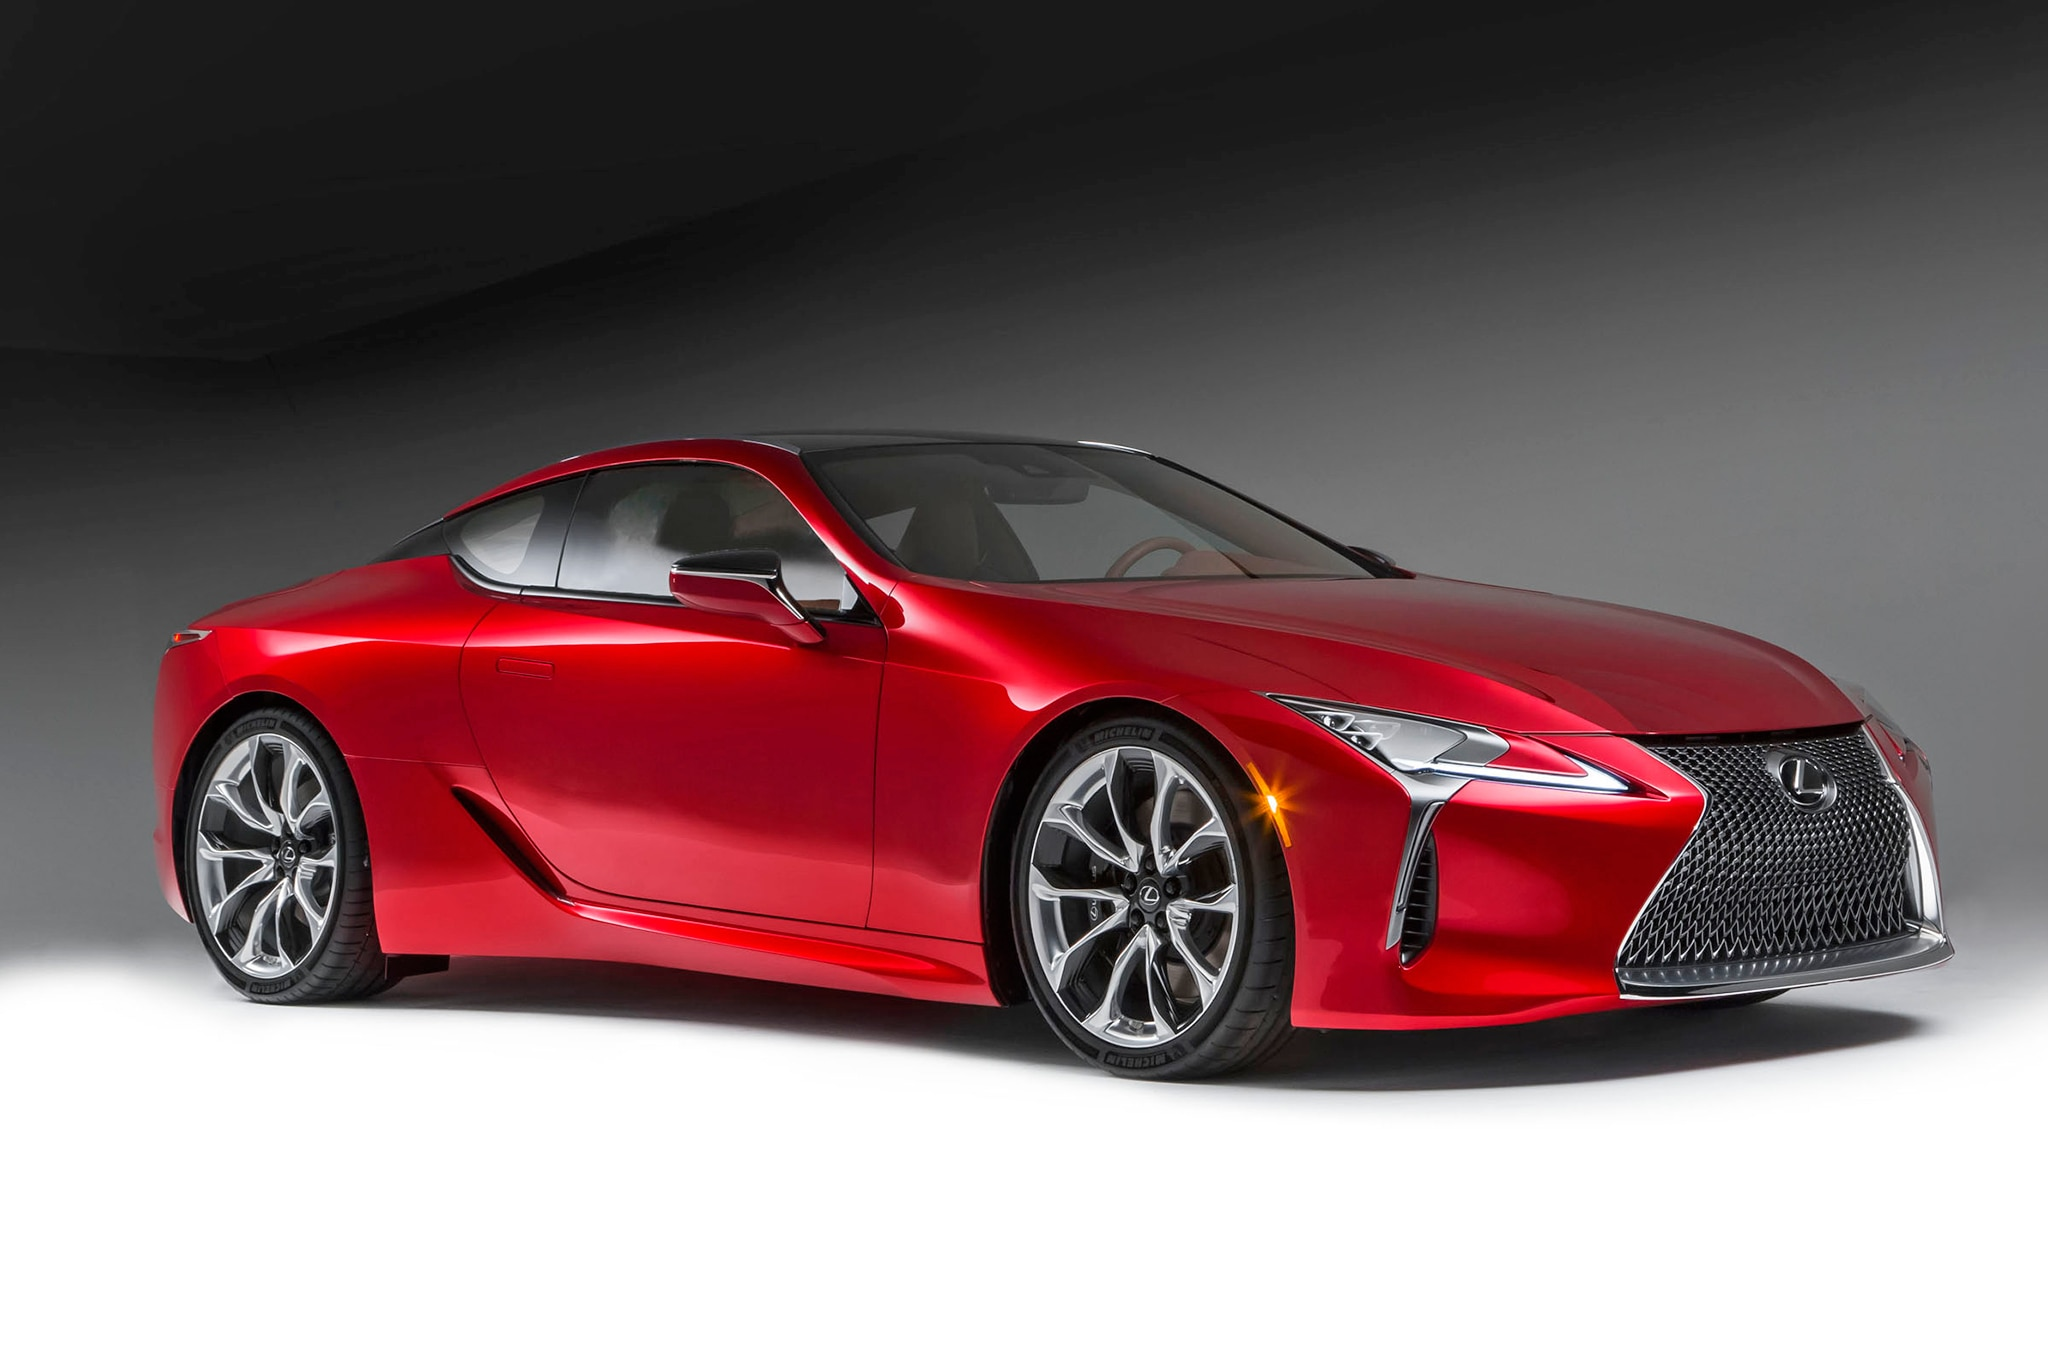 lexus lc 500h hybrid coupe to debut in geneva automobile magazine. Black Bedroom Furniture Sets. Home Design Ideas